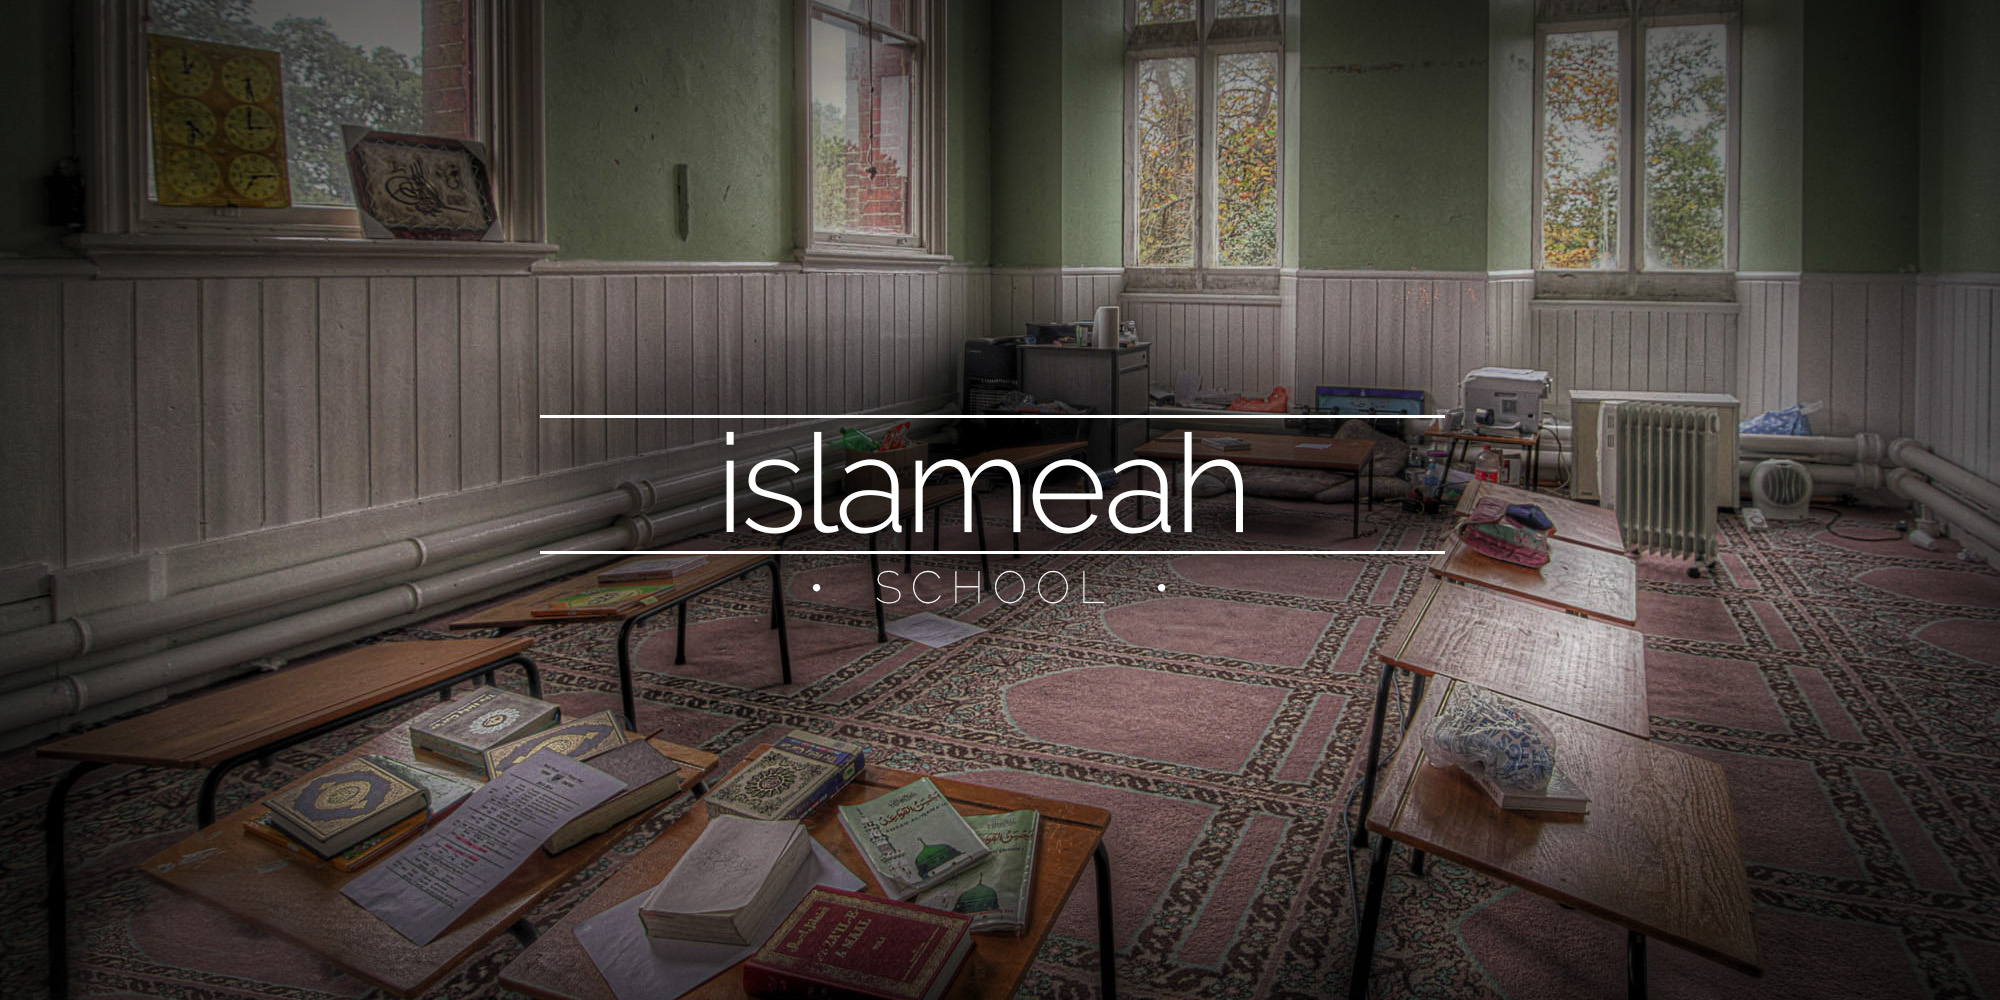 Jameah Islameah School